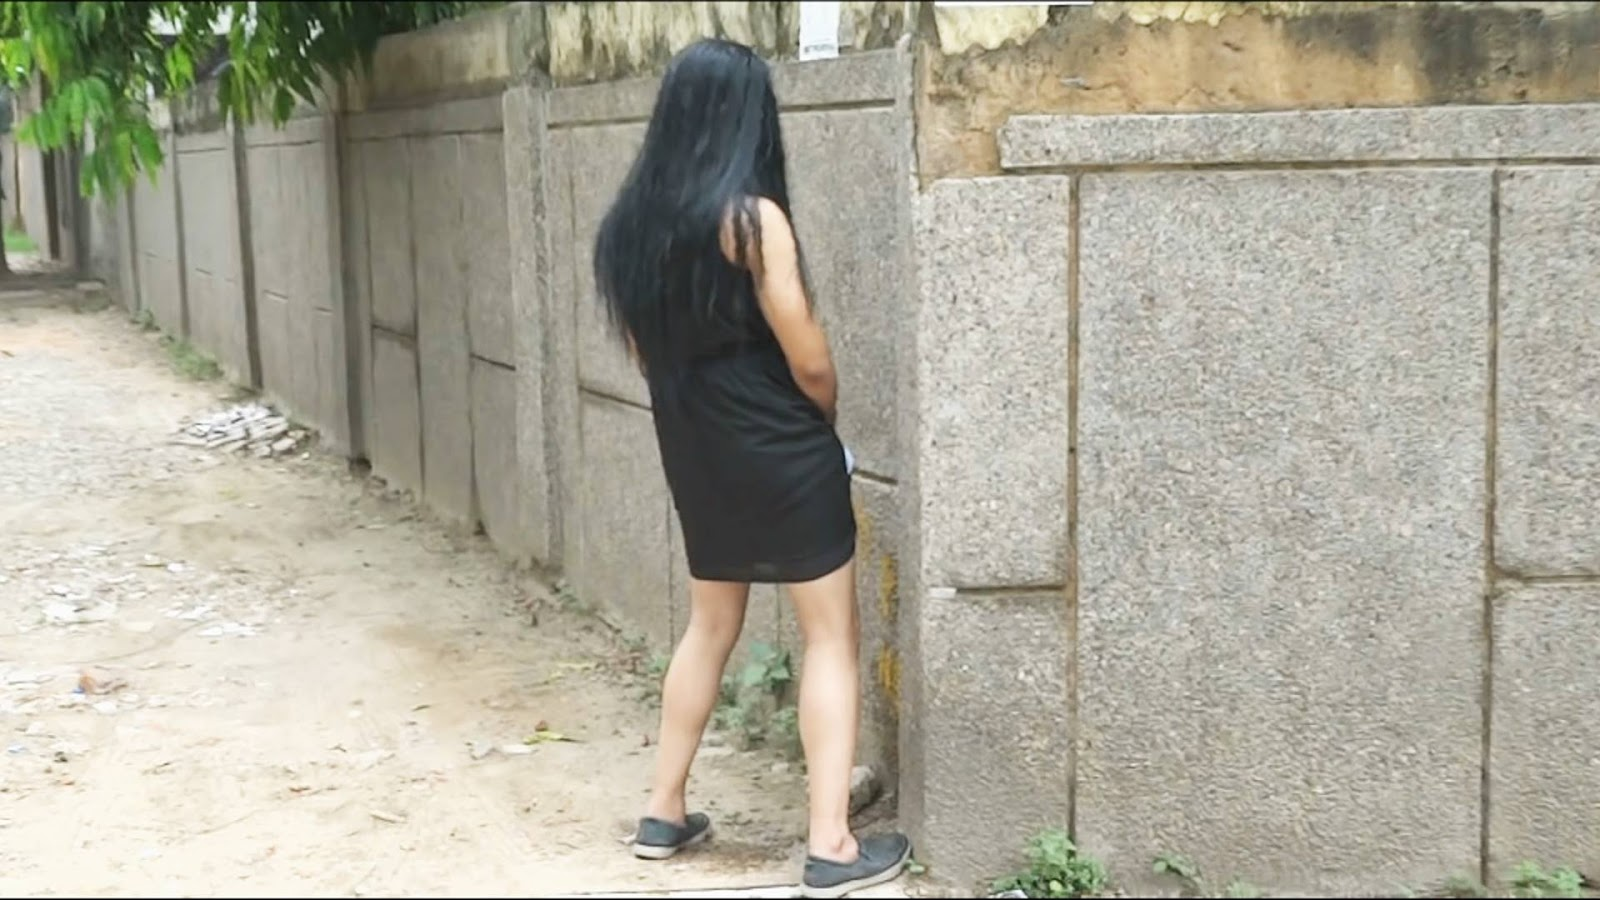 E Note Hot Girl Peeing On Streets-9376